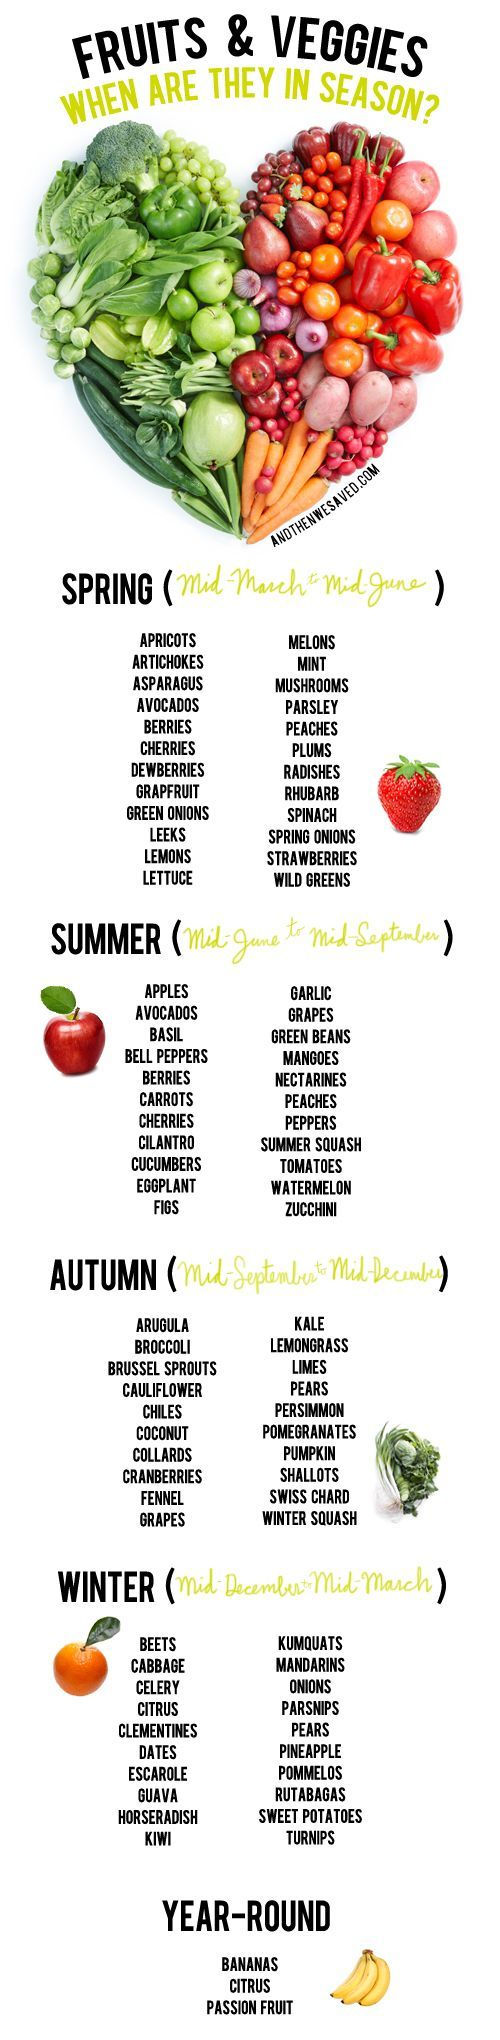 What to eat in which season?